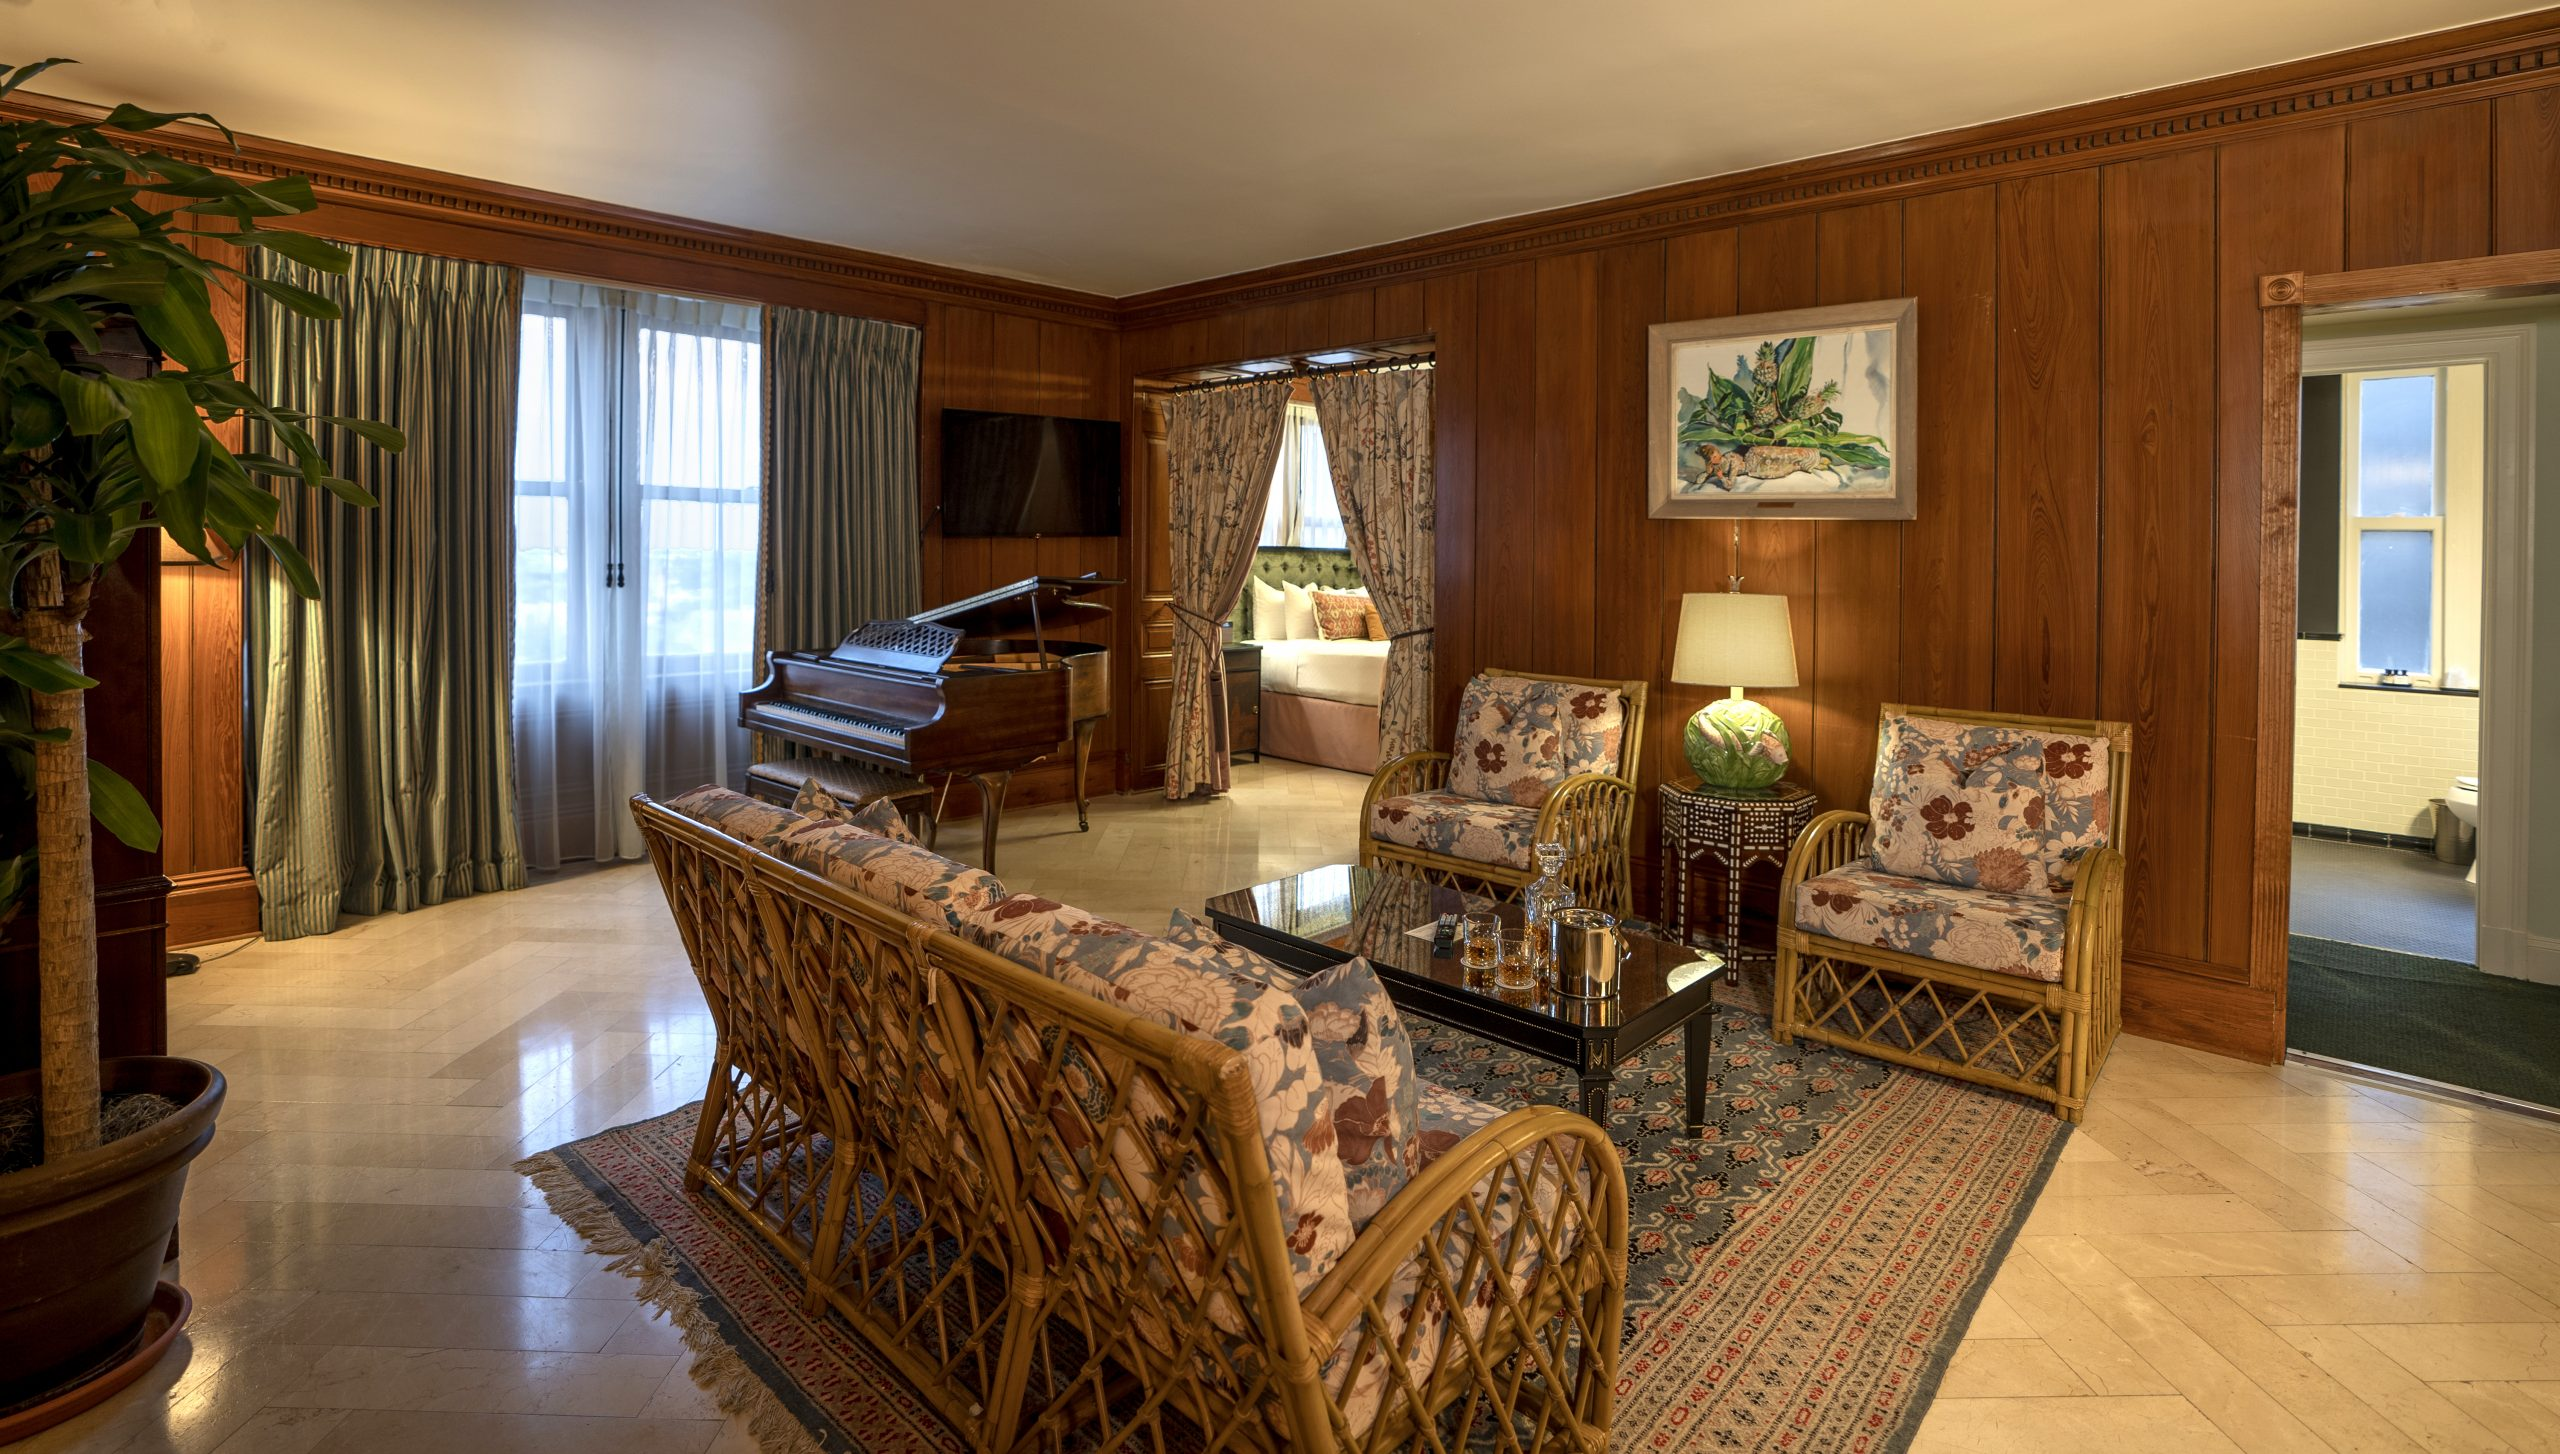 Hotel suite in New Orleans with a baby grand piano in the seating area with sofa and two chairs